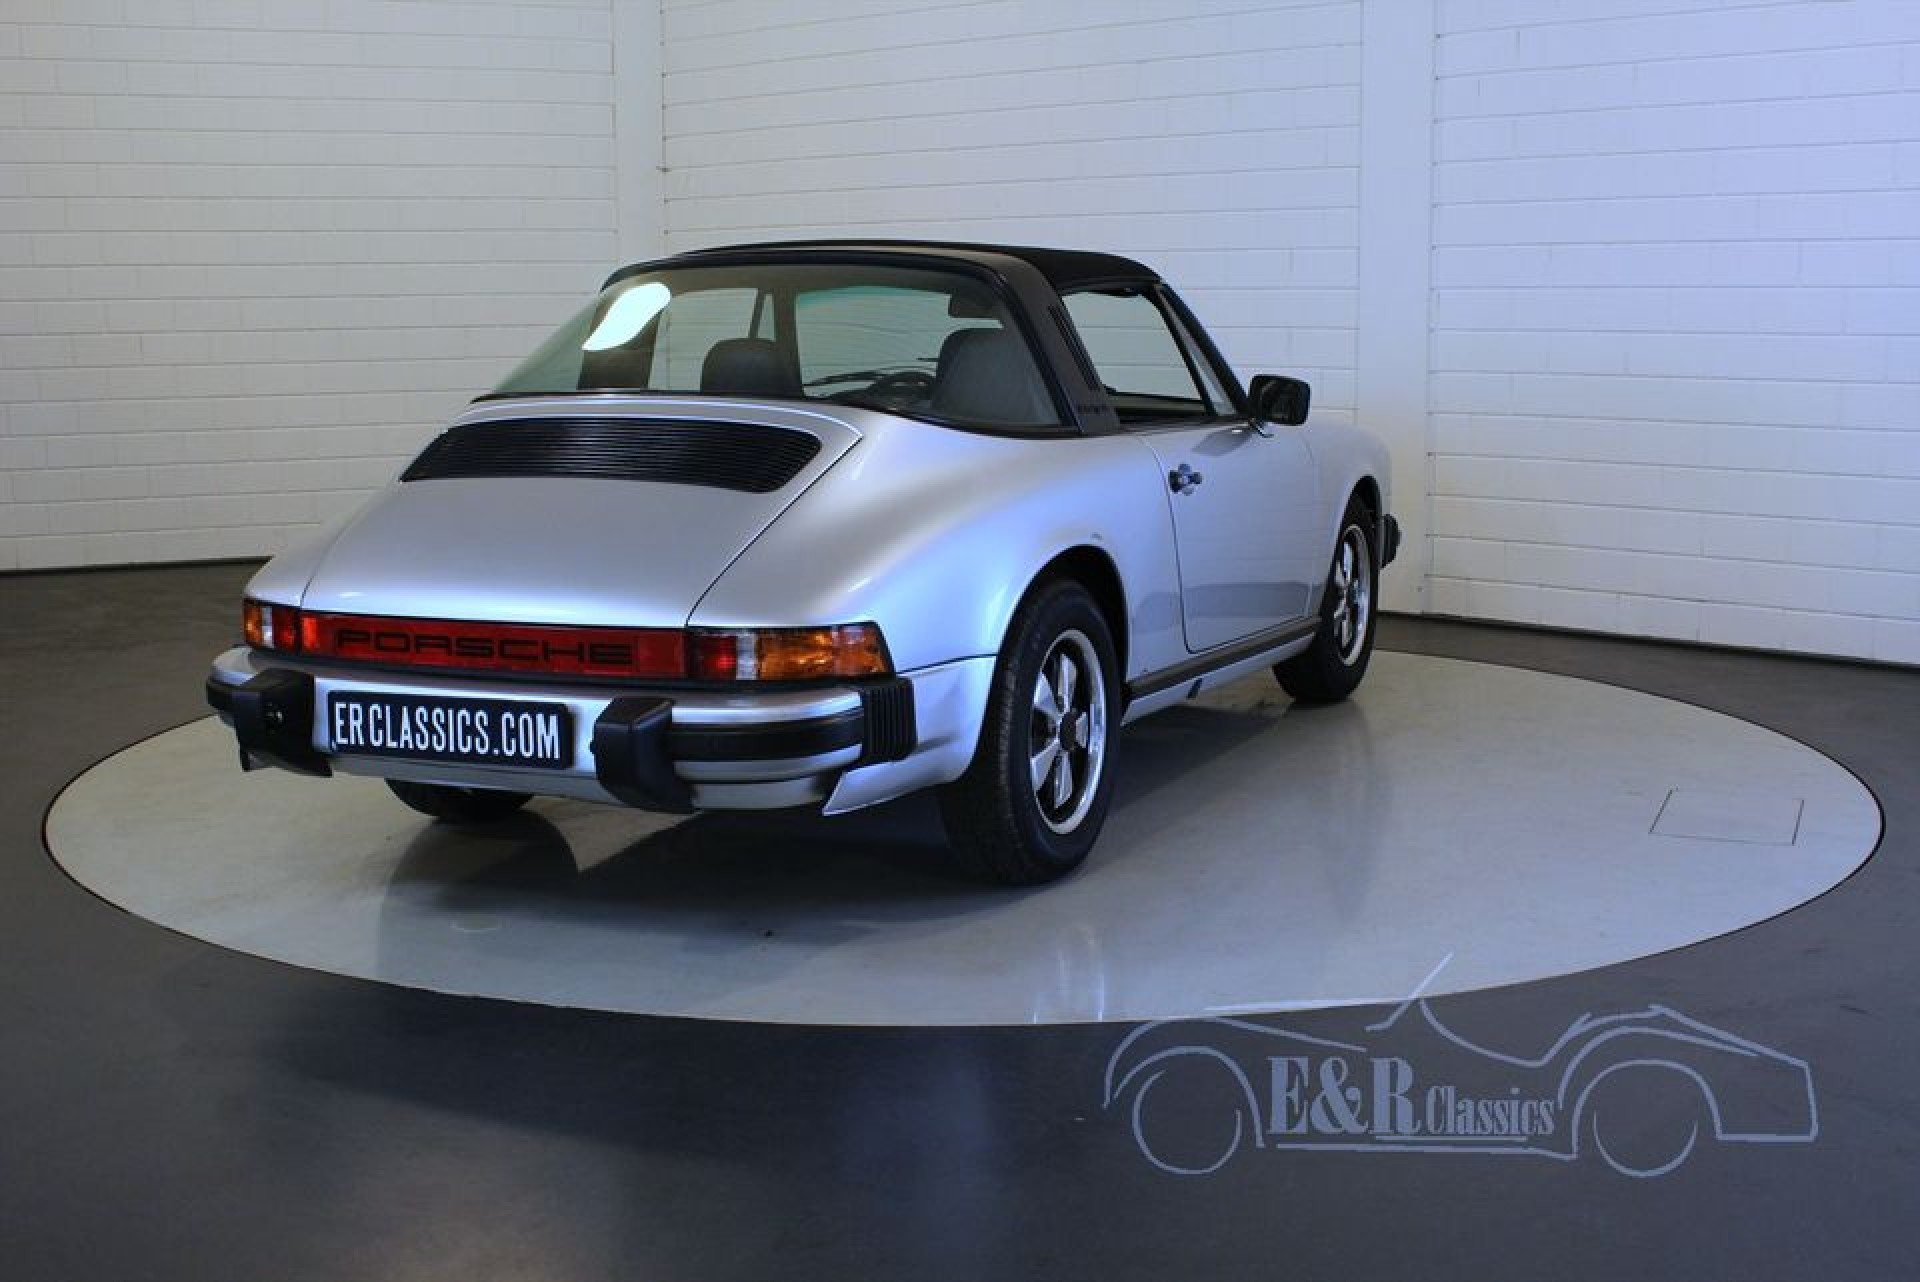 porsche 911 s targa 1977 vendre erclassics. Black Bedroom Furniture Sets. Home Design Ideas